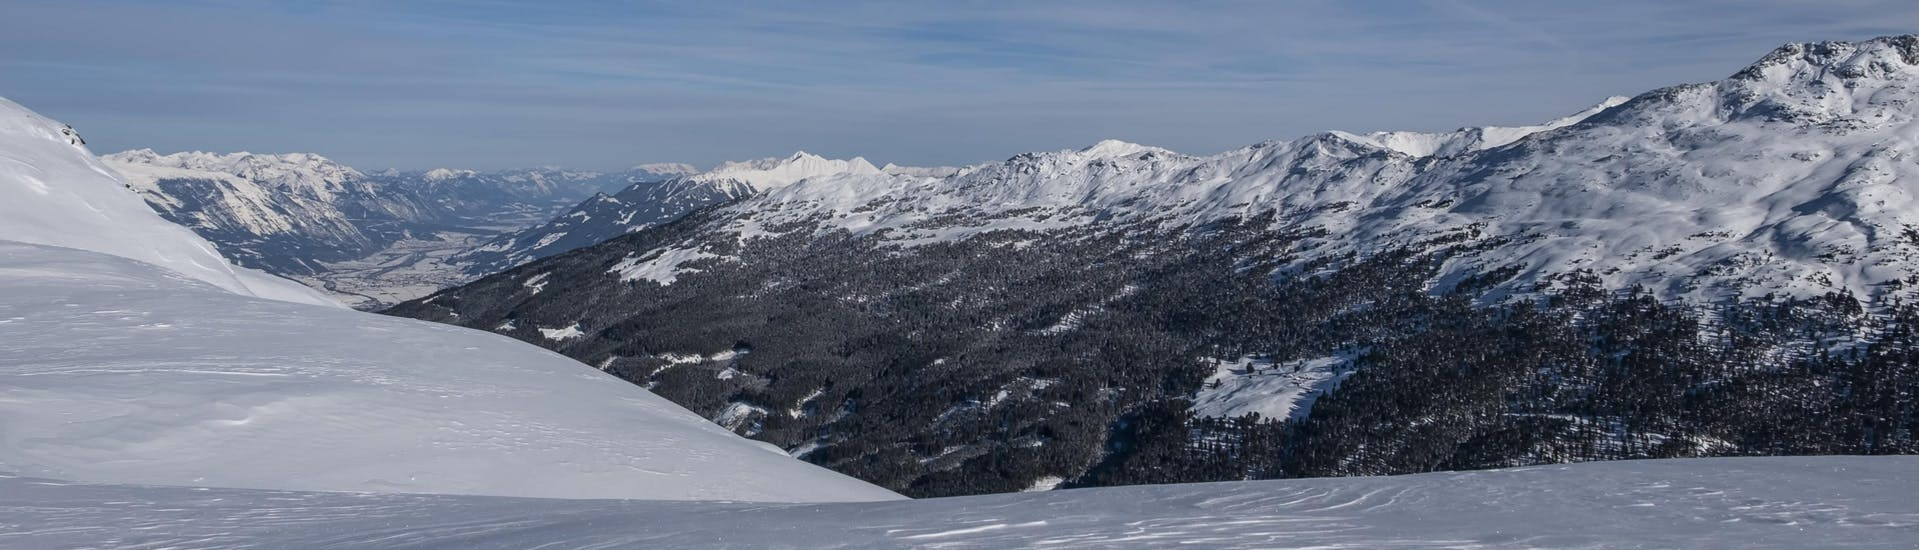 A view of the snow-capped peak of the Glungezer, where local ski schools take aspiring skiers for their ski lessons.